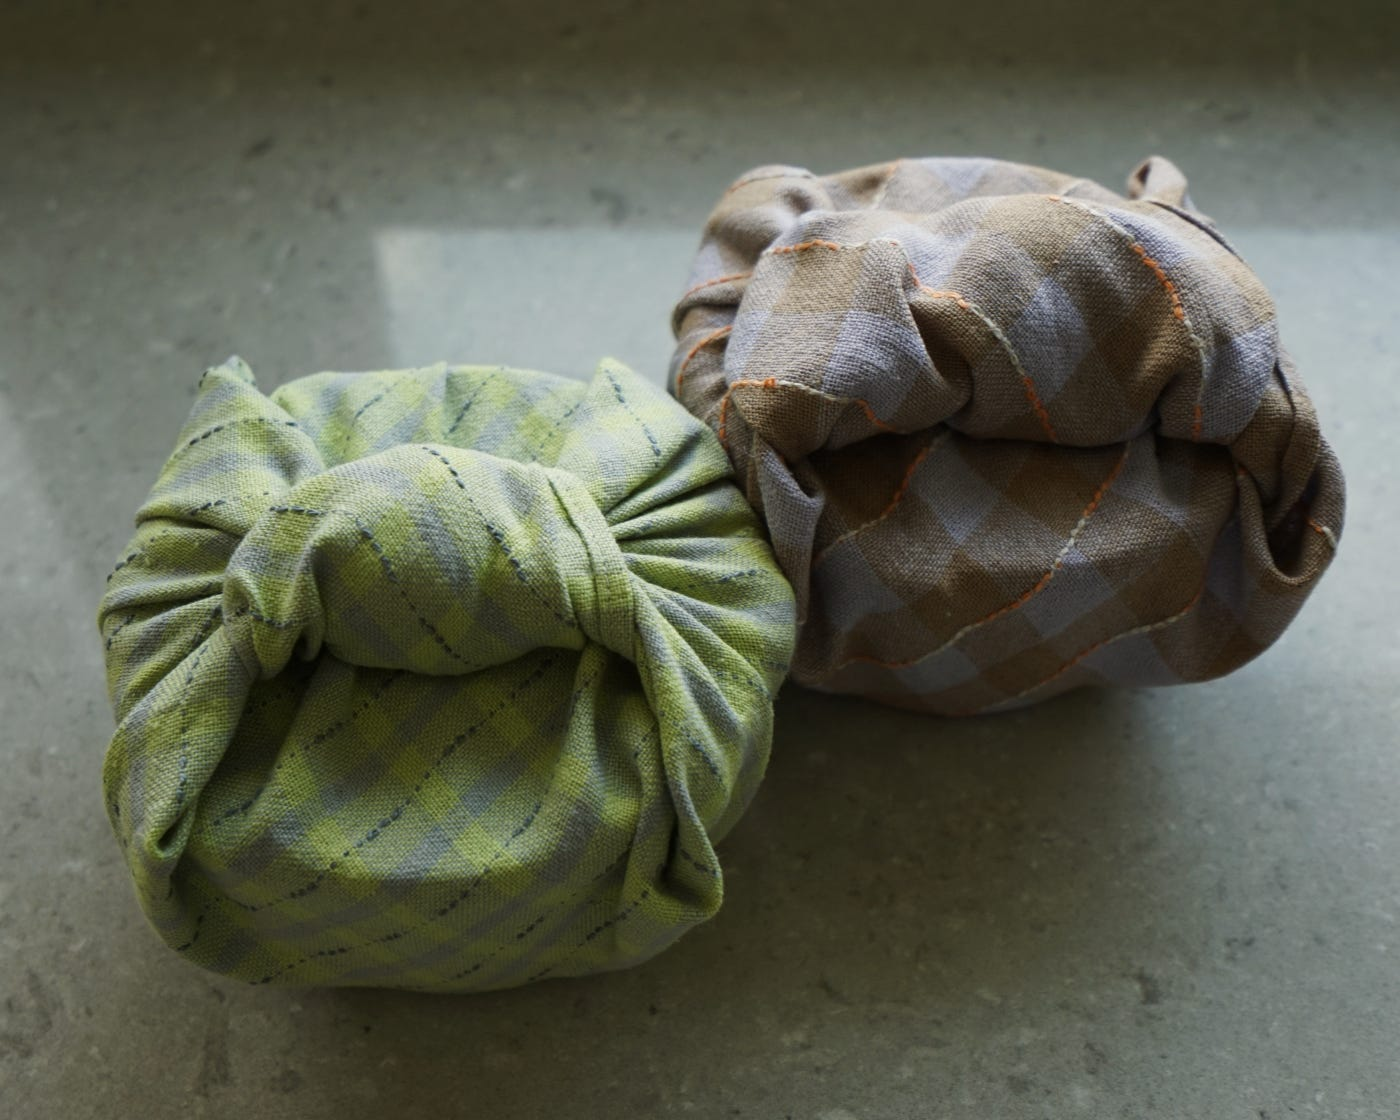 Two containers wrapped in cloth sit next to each other on a countertop.